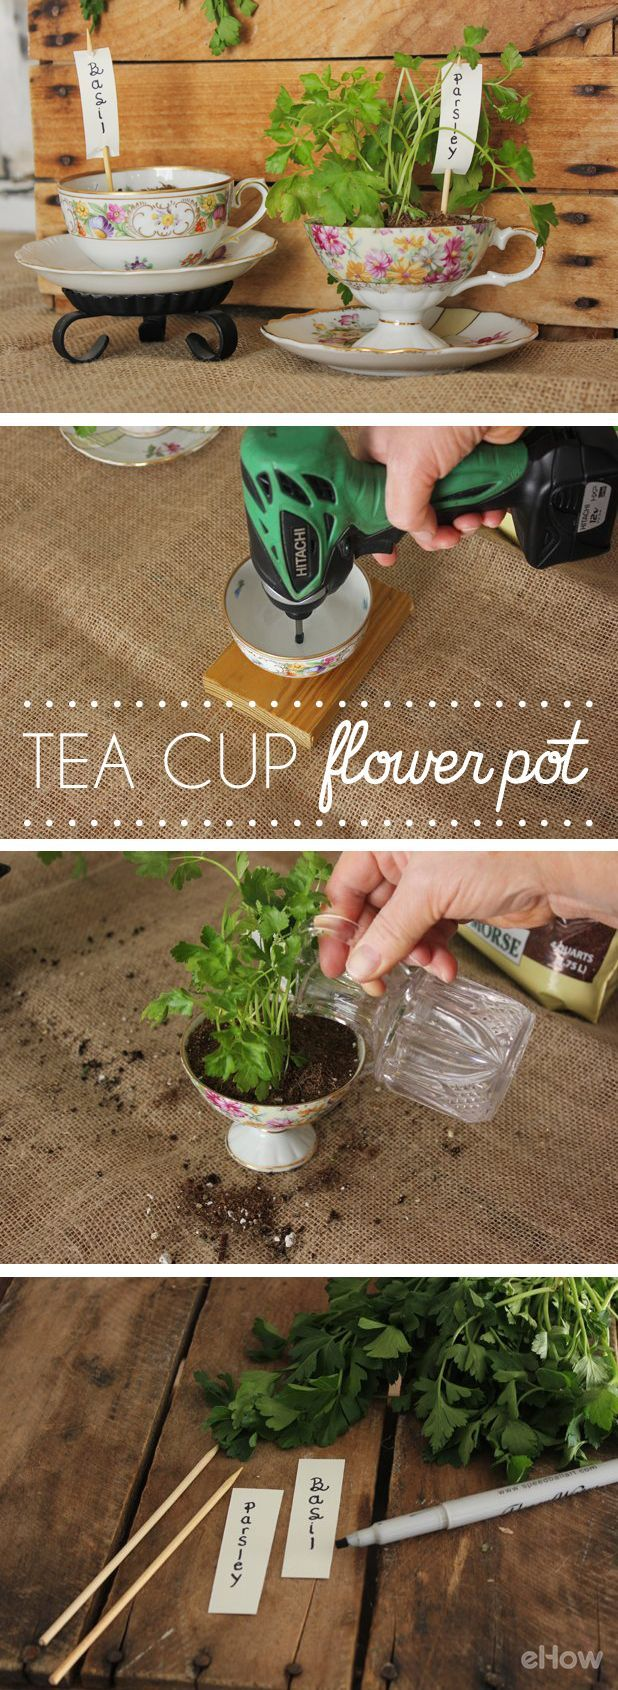 How to make a flower pot from a tea cup gardens vintage Kitchen windowsill herb pots